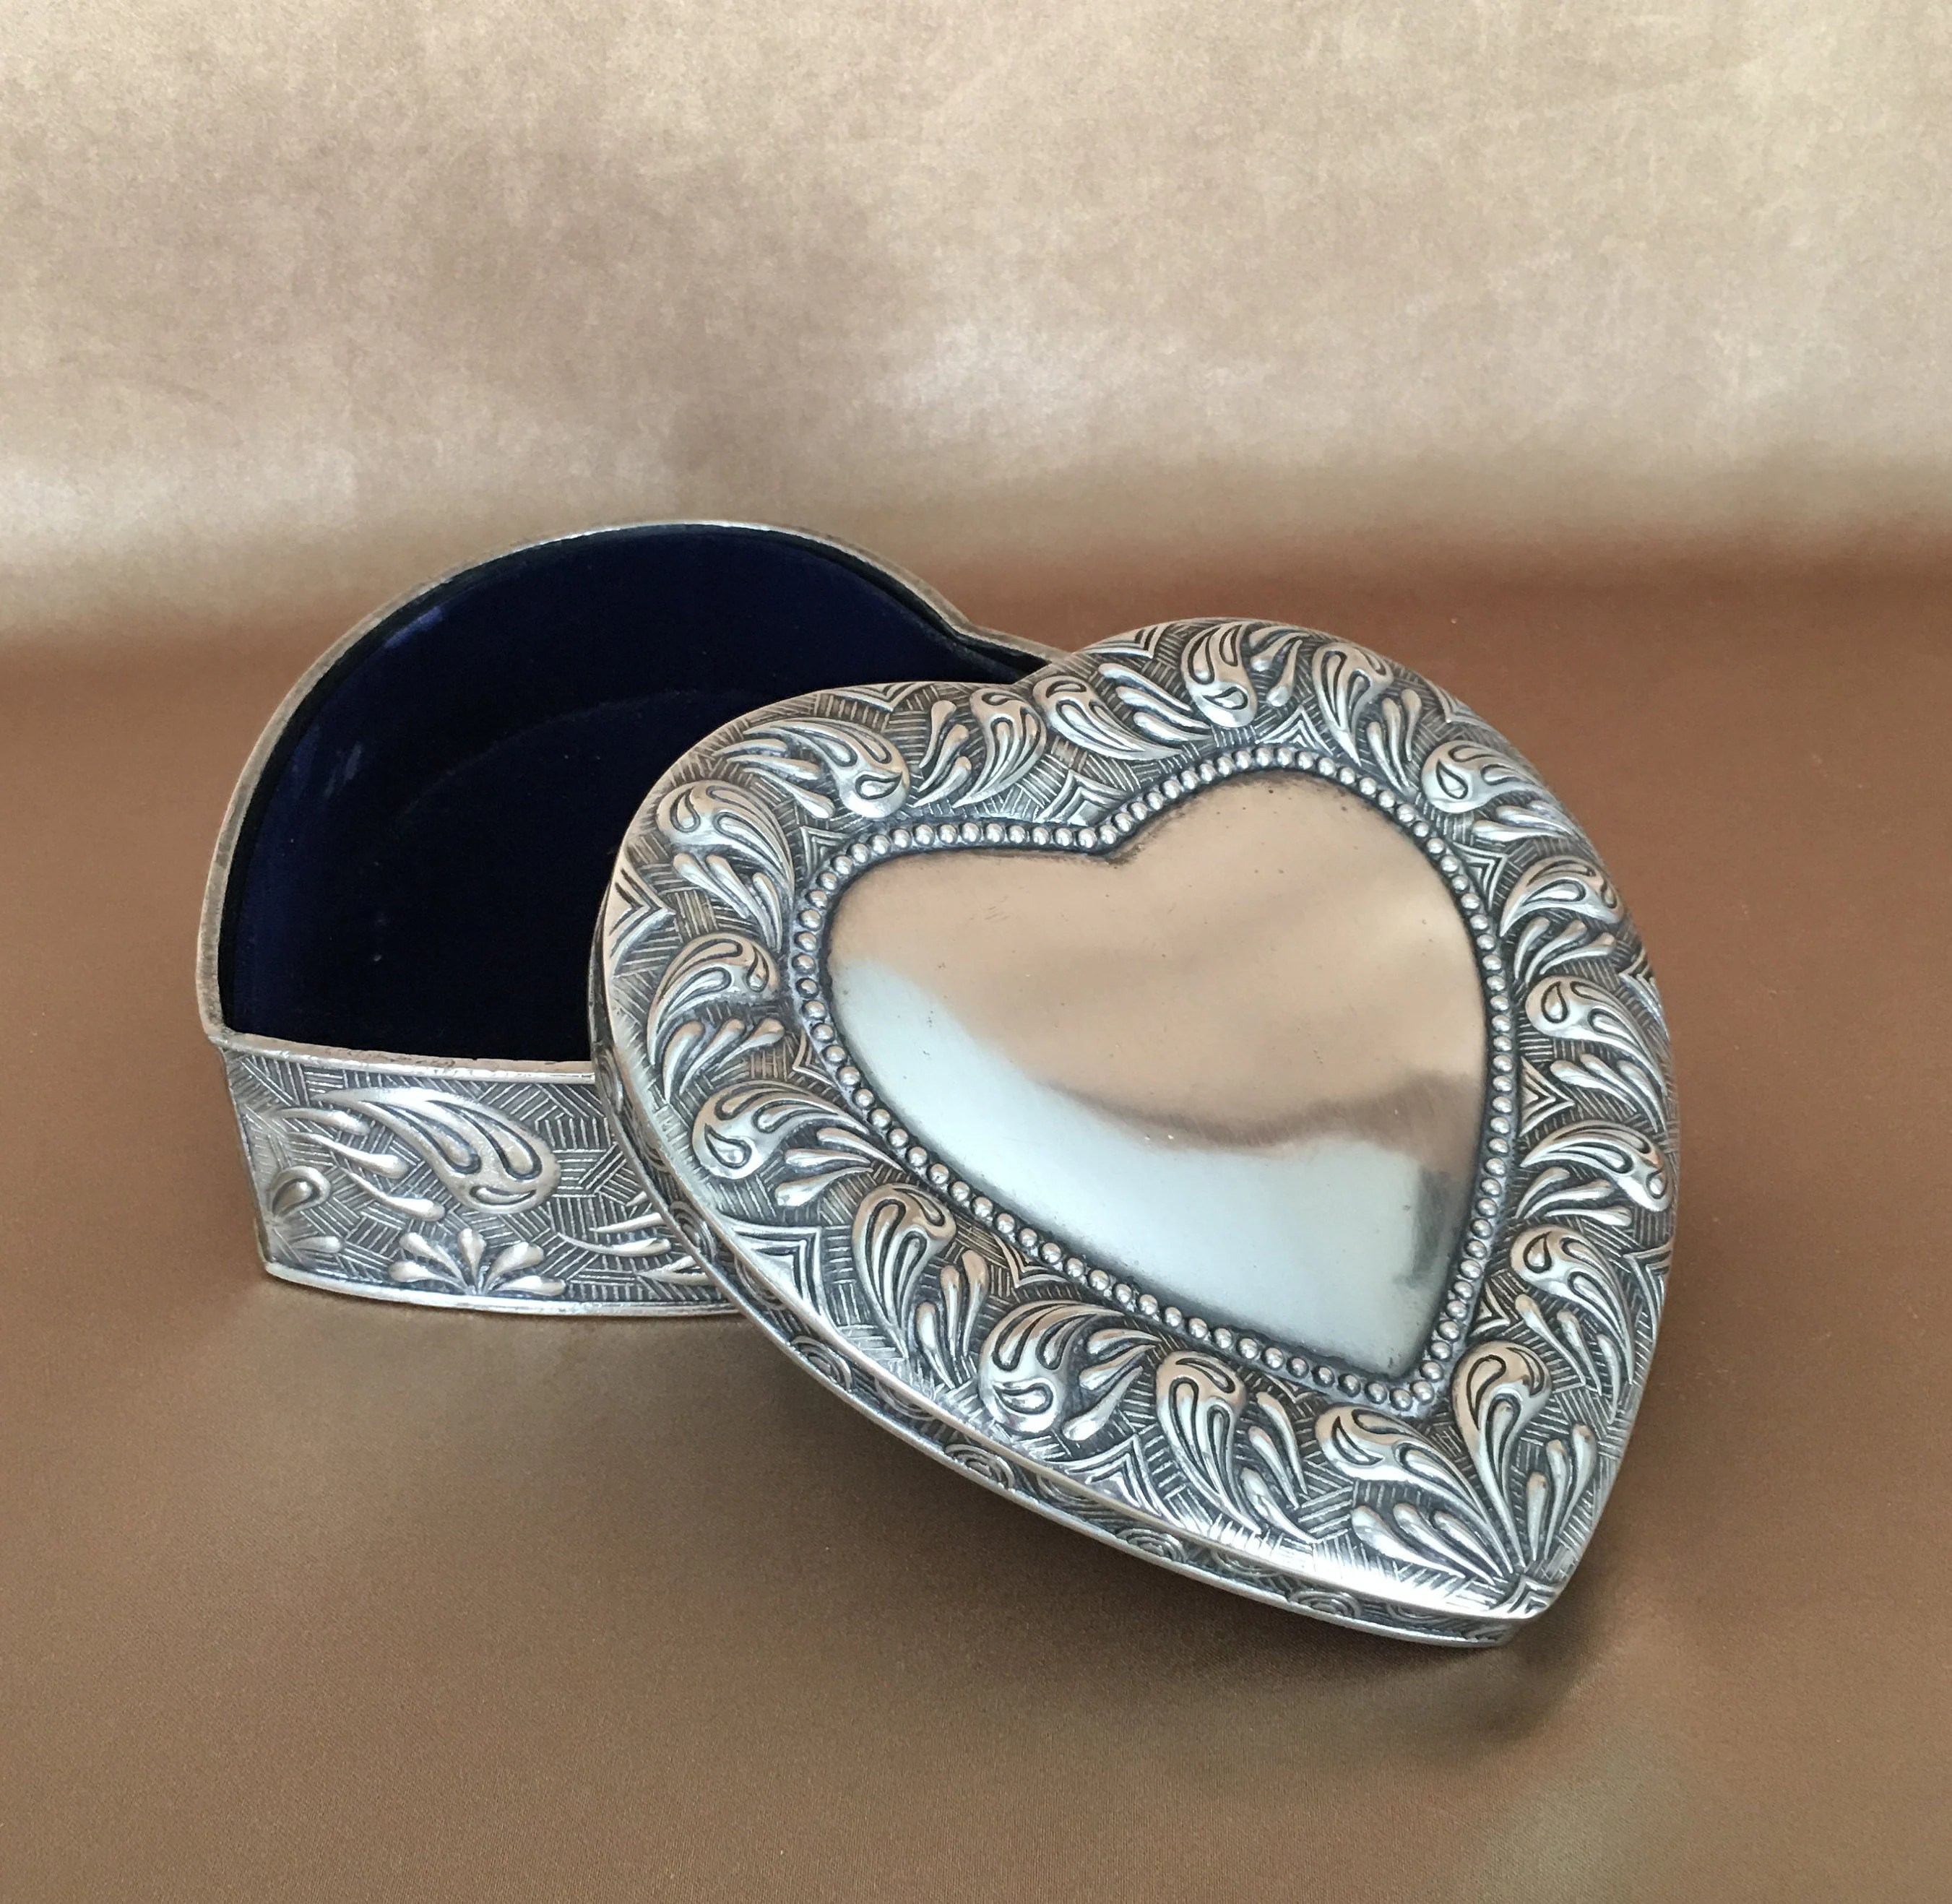 Art Deco Style Jewelry Boxes Silver Jewelry Box Lidded Heart Shape Large Heavy Art Deco Style Embossed Silver Plate Vanity Piece Vintage Wedding Bridesmaid Gift